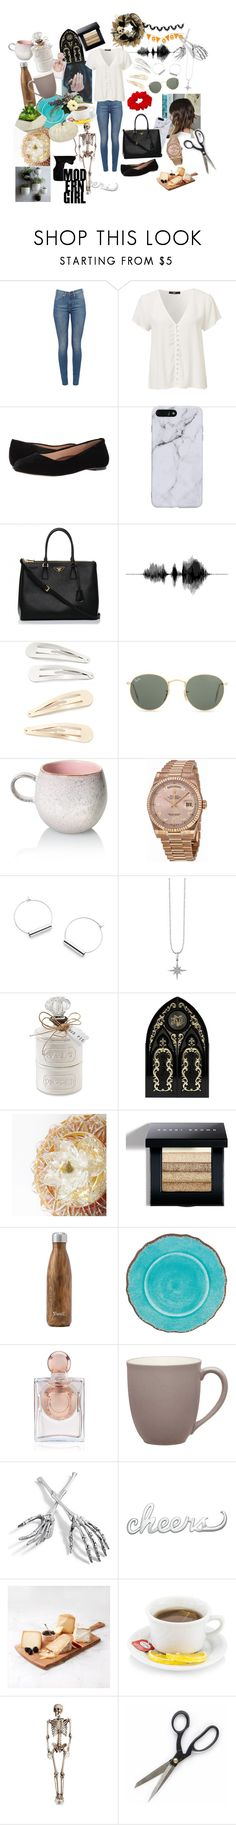 """""""💜purple hearts💜"""" by fashioninmyindustry ❤ liked on Polyvore featuring Walking Cradles, Prada, Kitsch, Ray-Ban, Rolex, Sydney Evan, Kat Von D, Bobbi Brown Cosmetics, West Elm and Frontgate"""